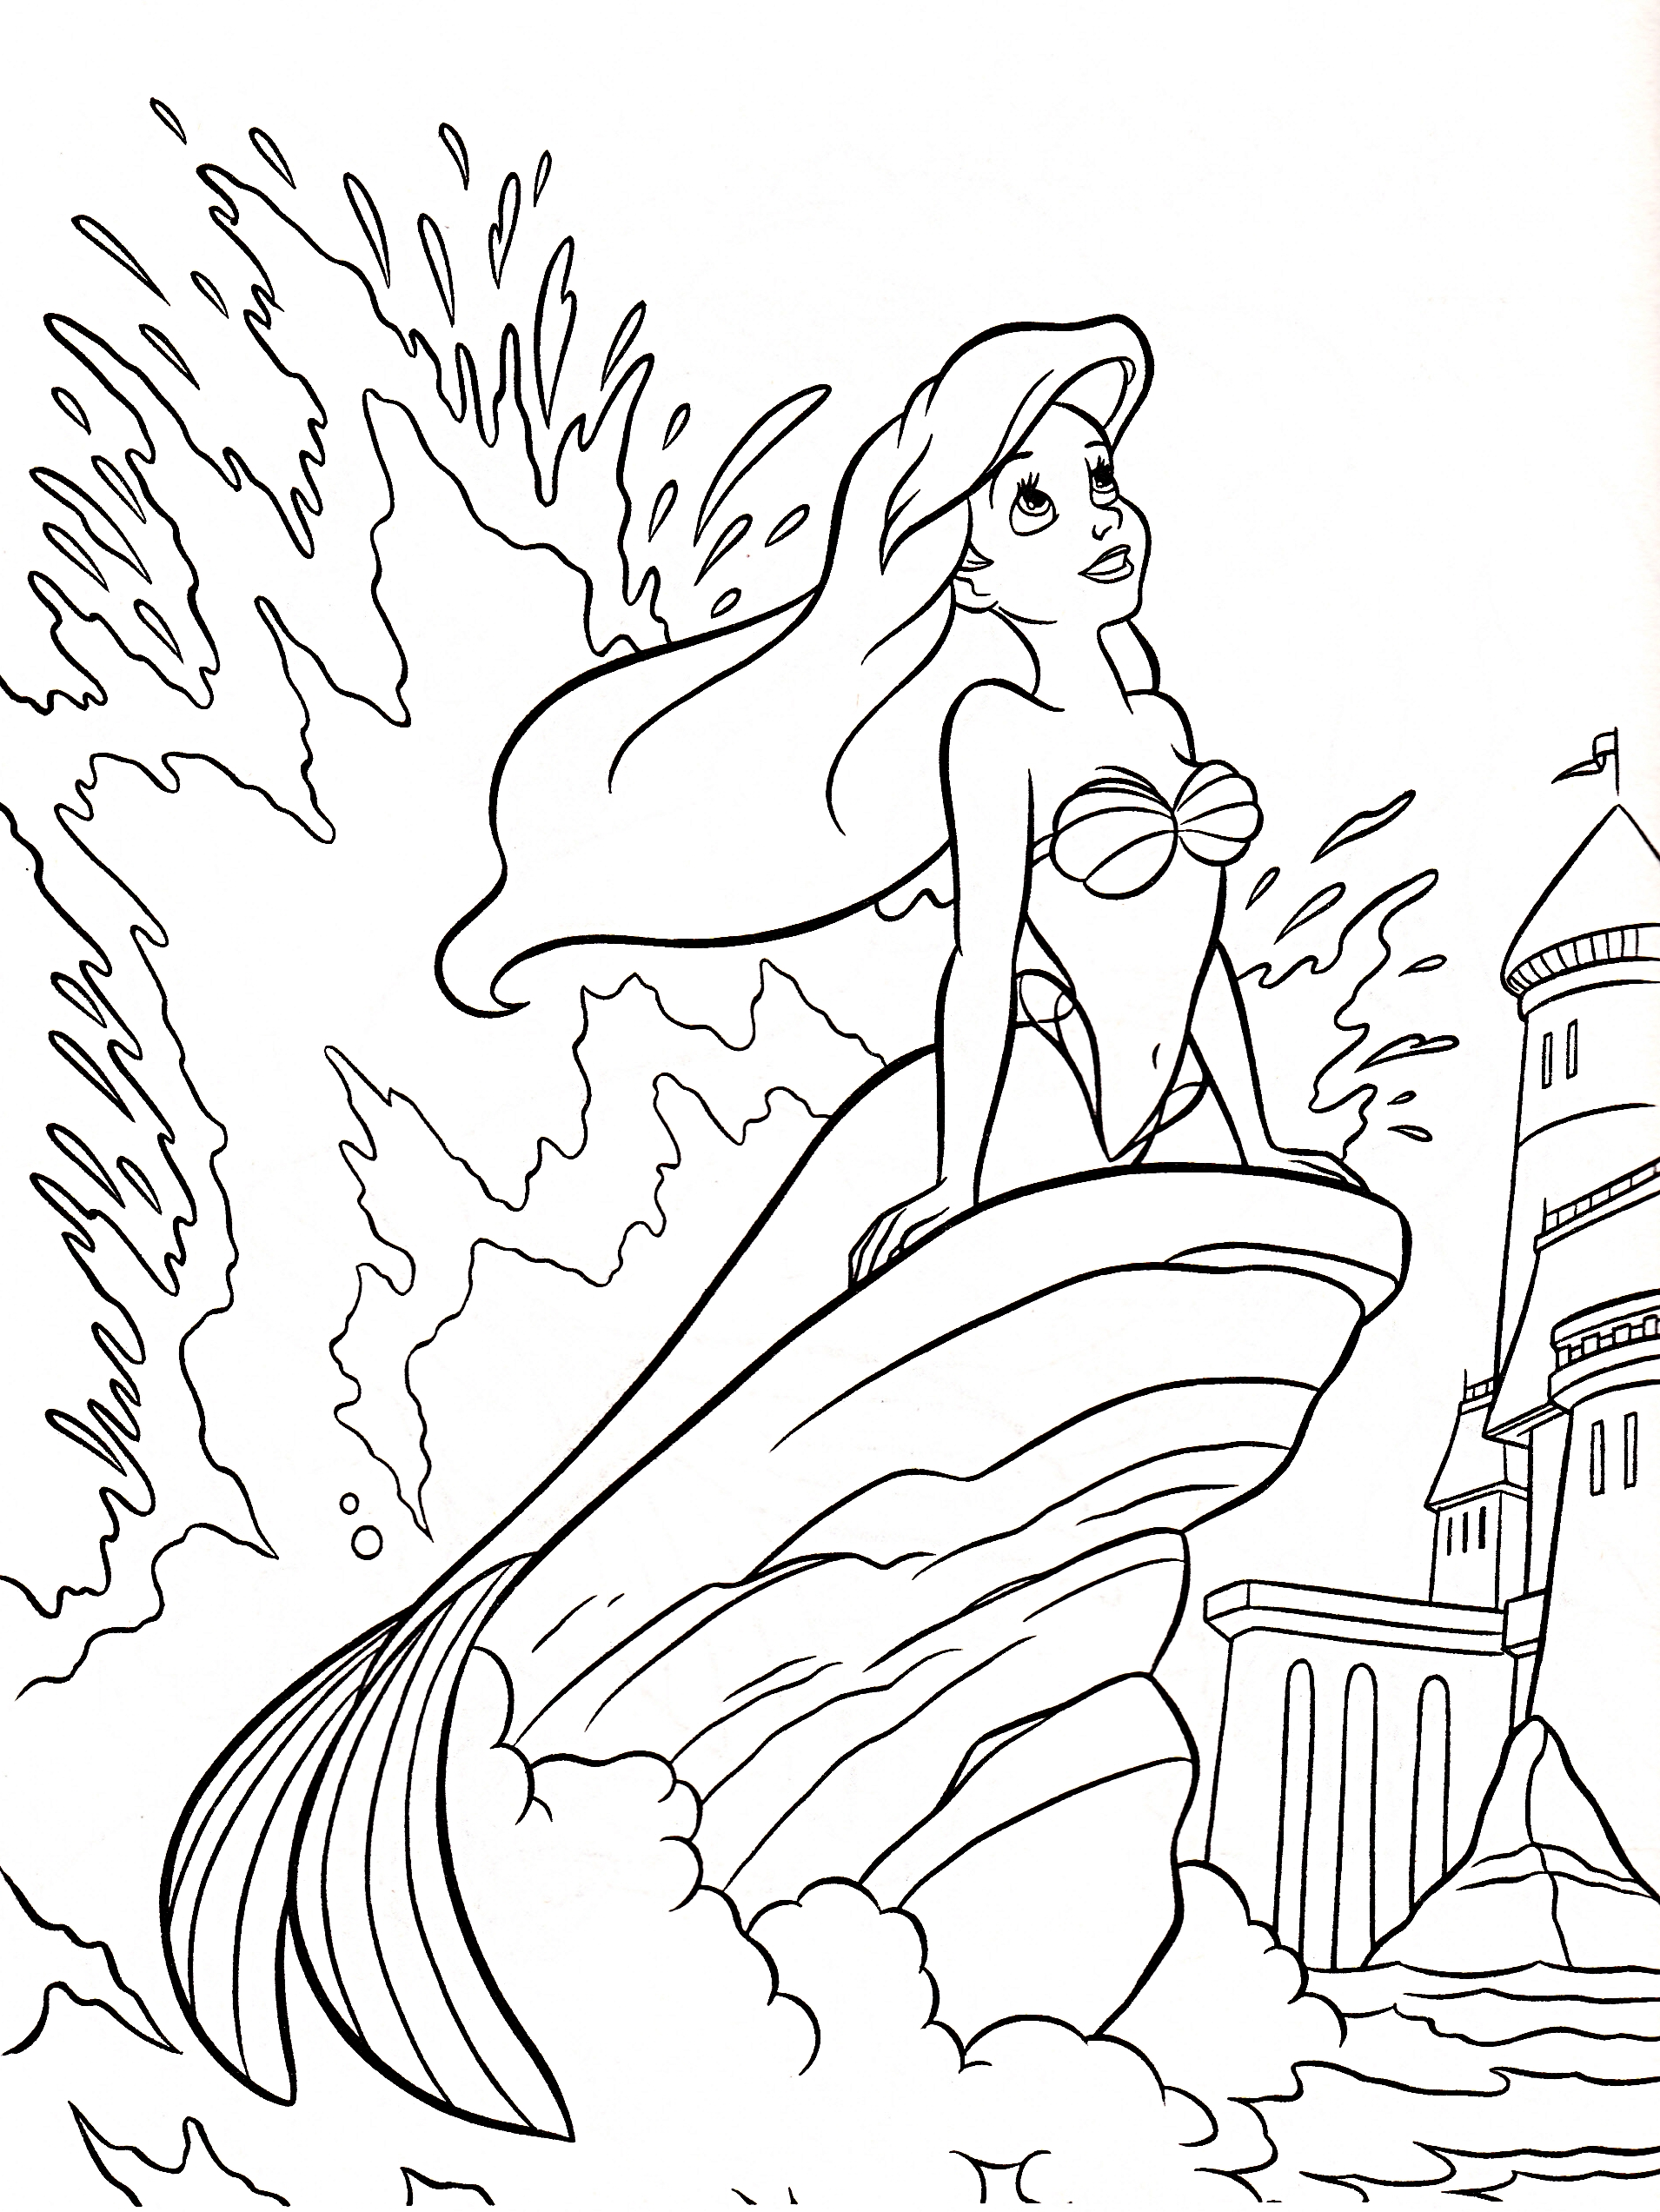 Pr princess coloring sheet - Download Princess Coloring Pages 24 Print